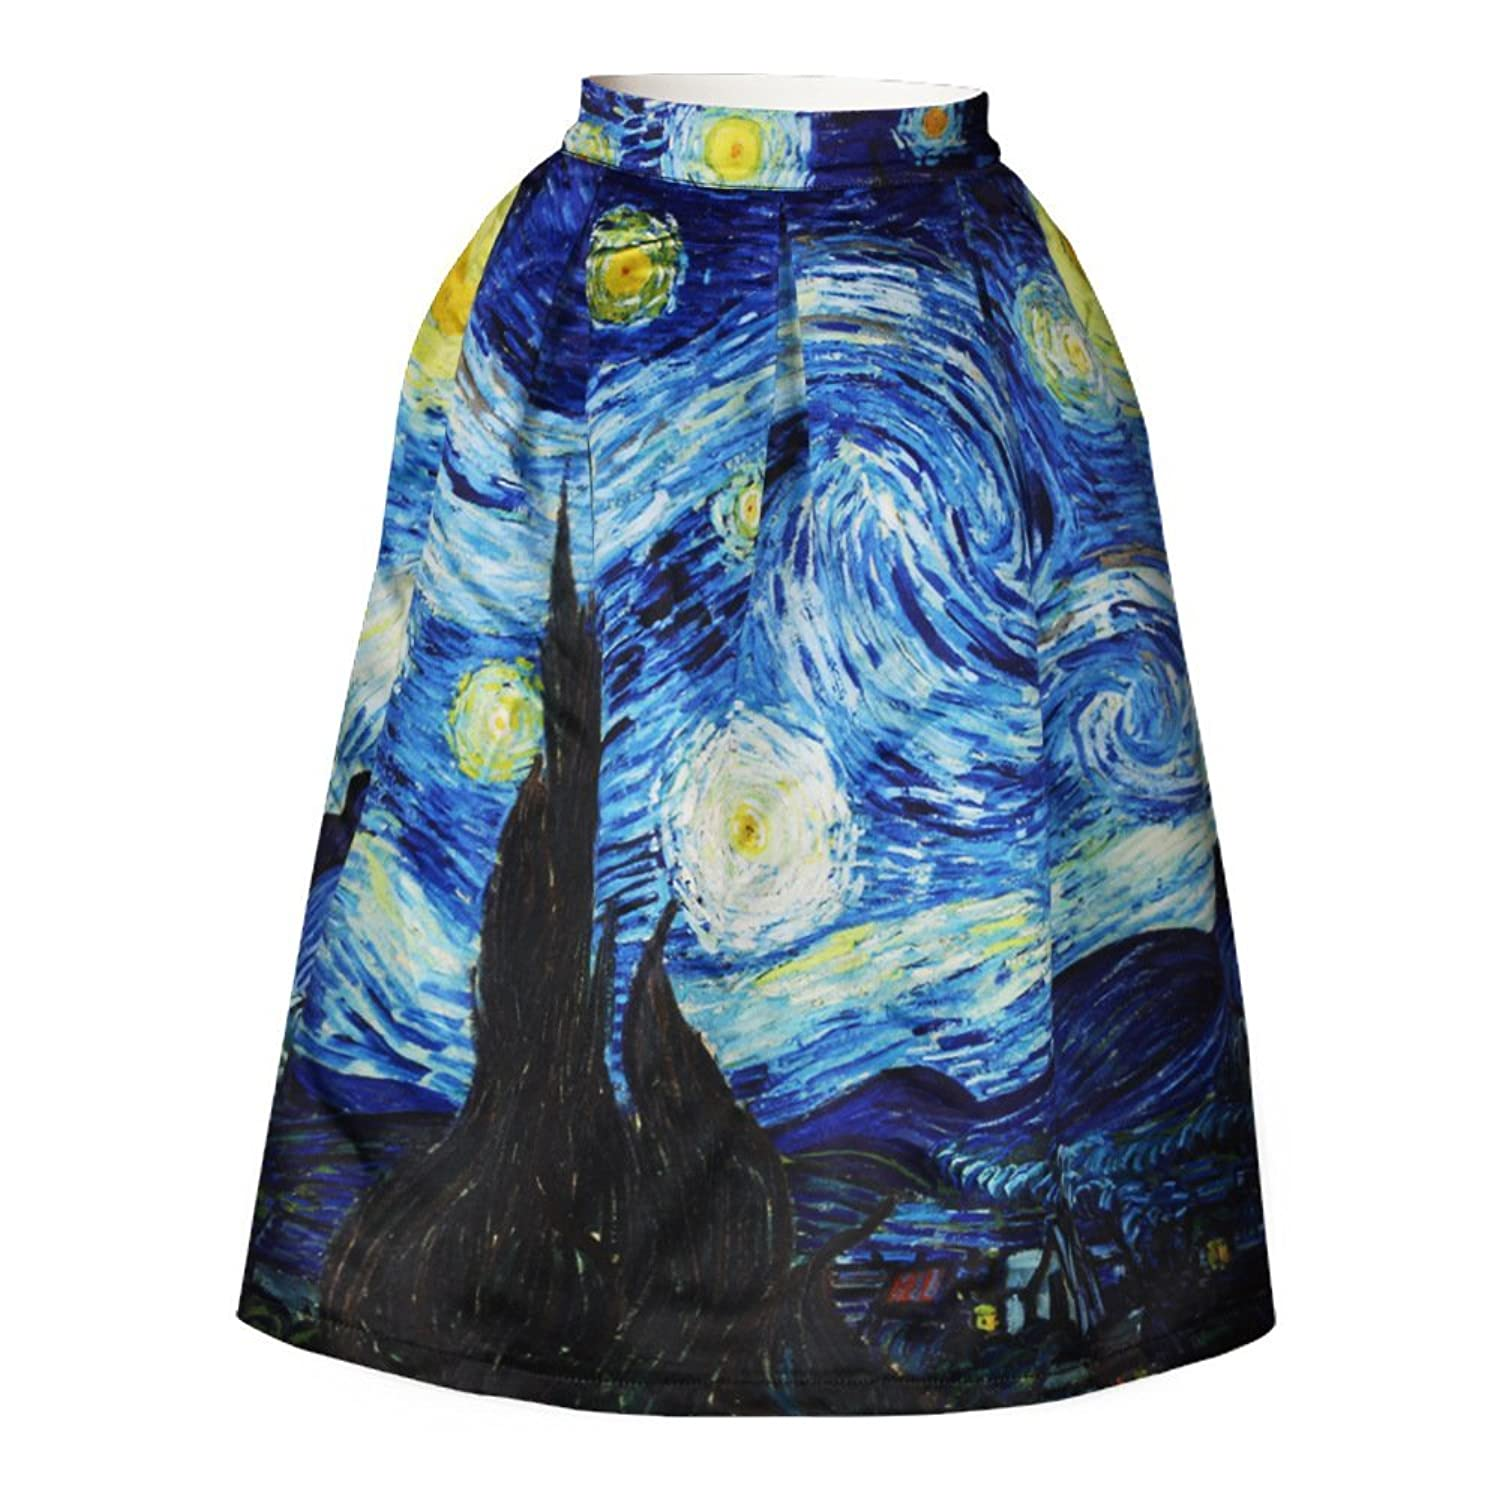 e62a96fcbf3 hot sale 2017 YITL Women s Printed Pleated Flared Midi A-line Skater Skirt